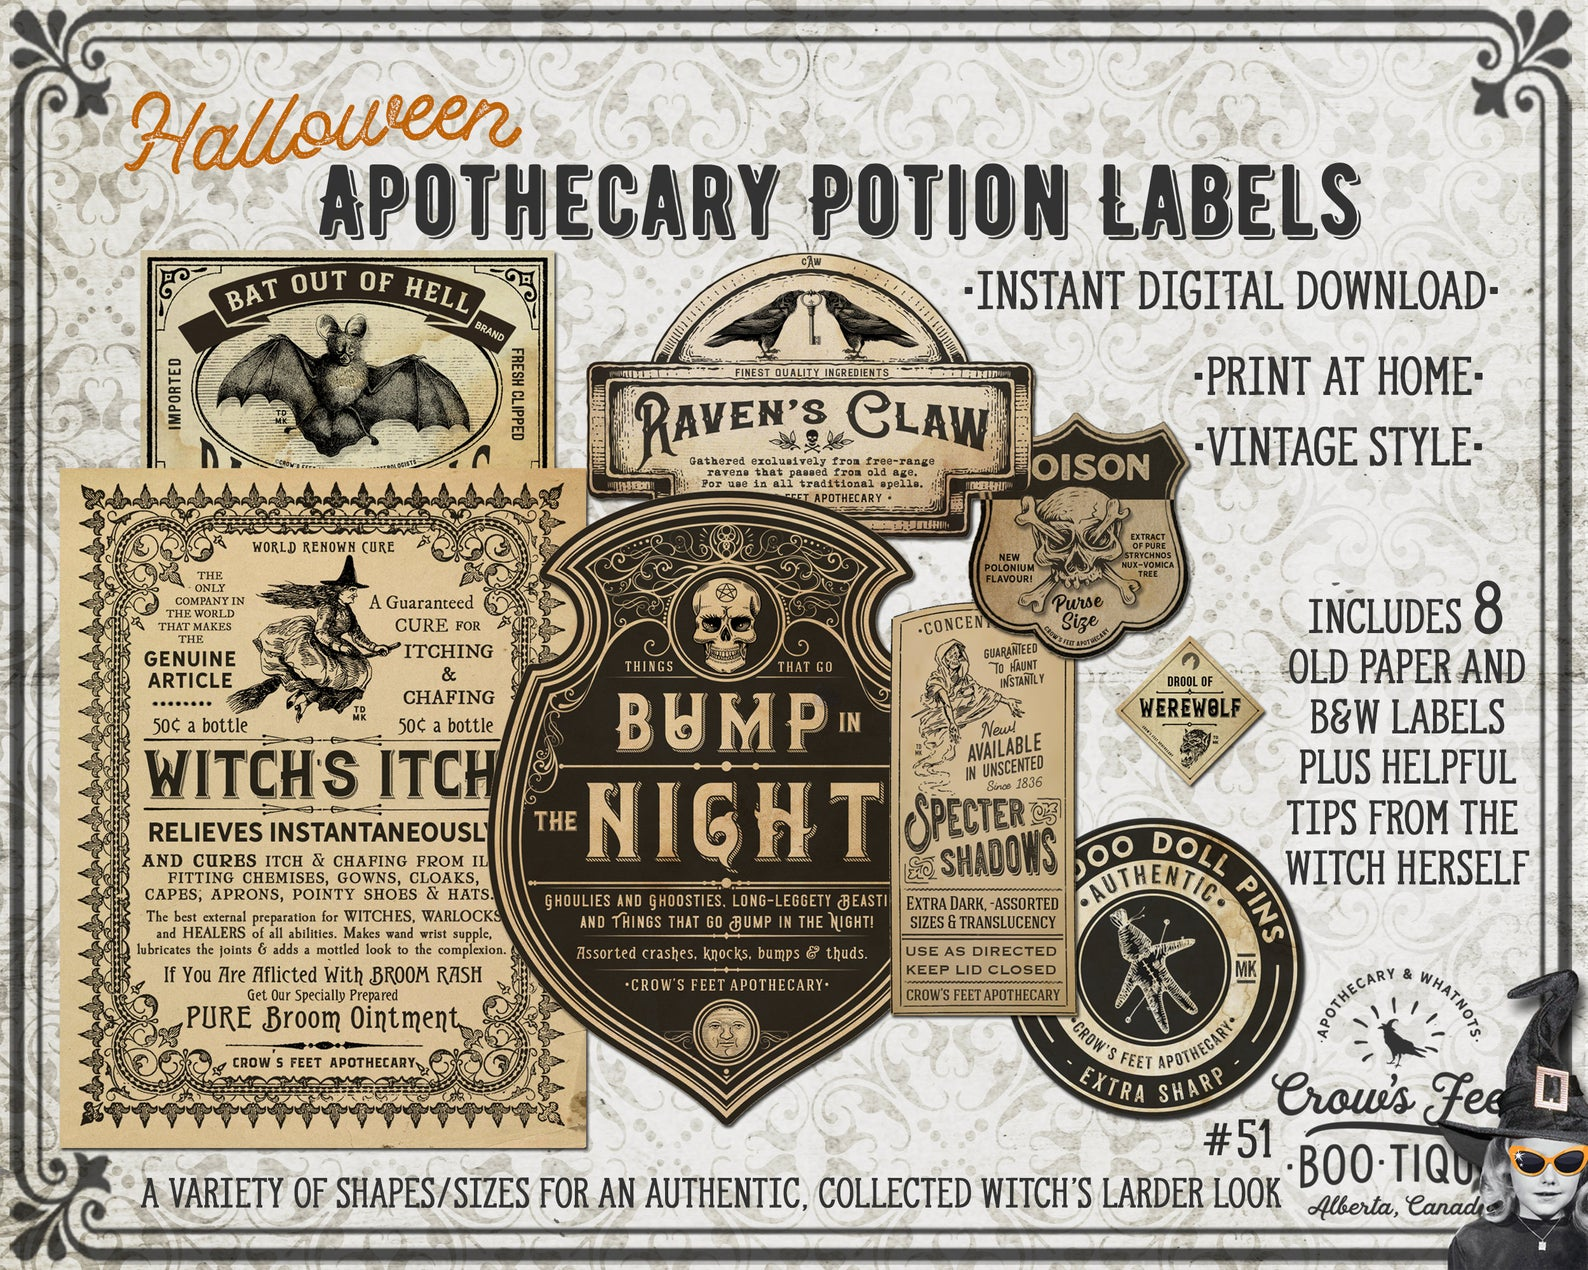 Printable Vintage-Style Apothecary Potion Labels for Halloween